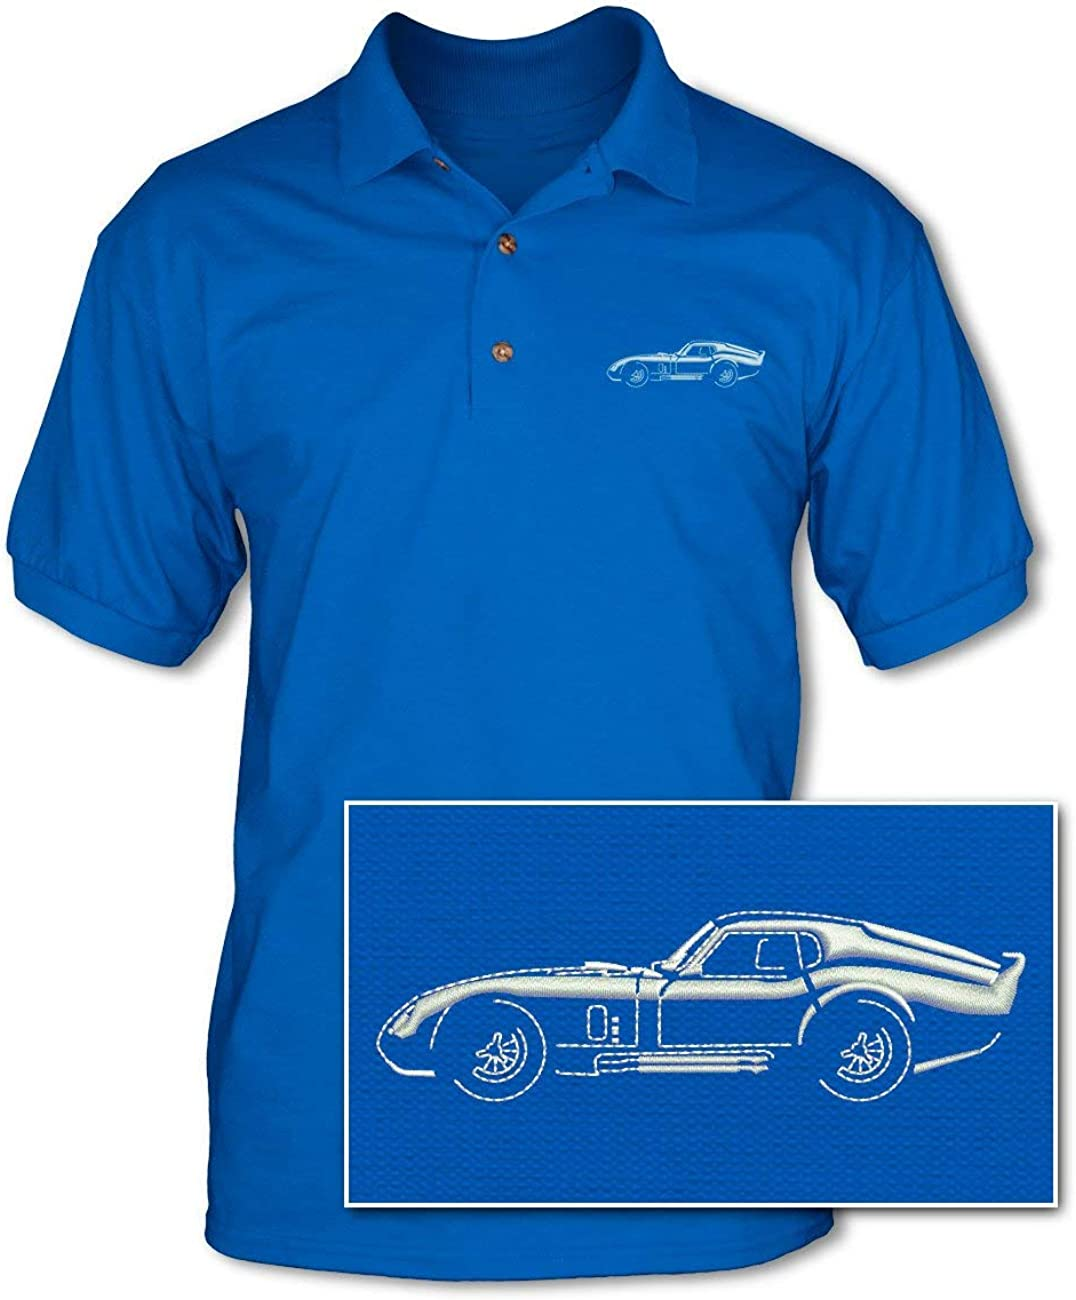 1964 Daytona Coupe Adult Pique Polo Shirt American Classic Car Side View